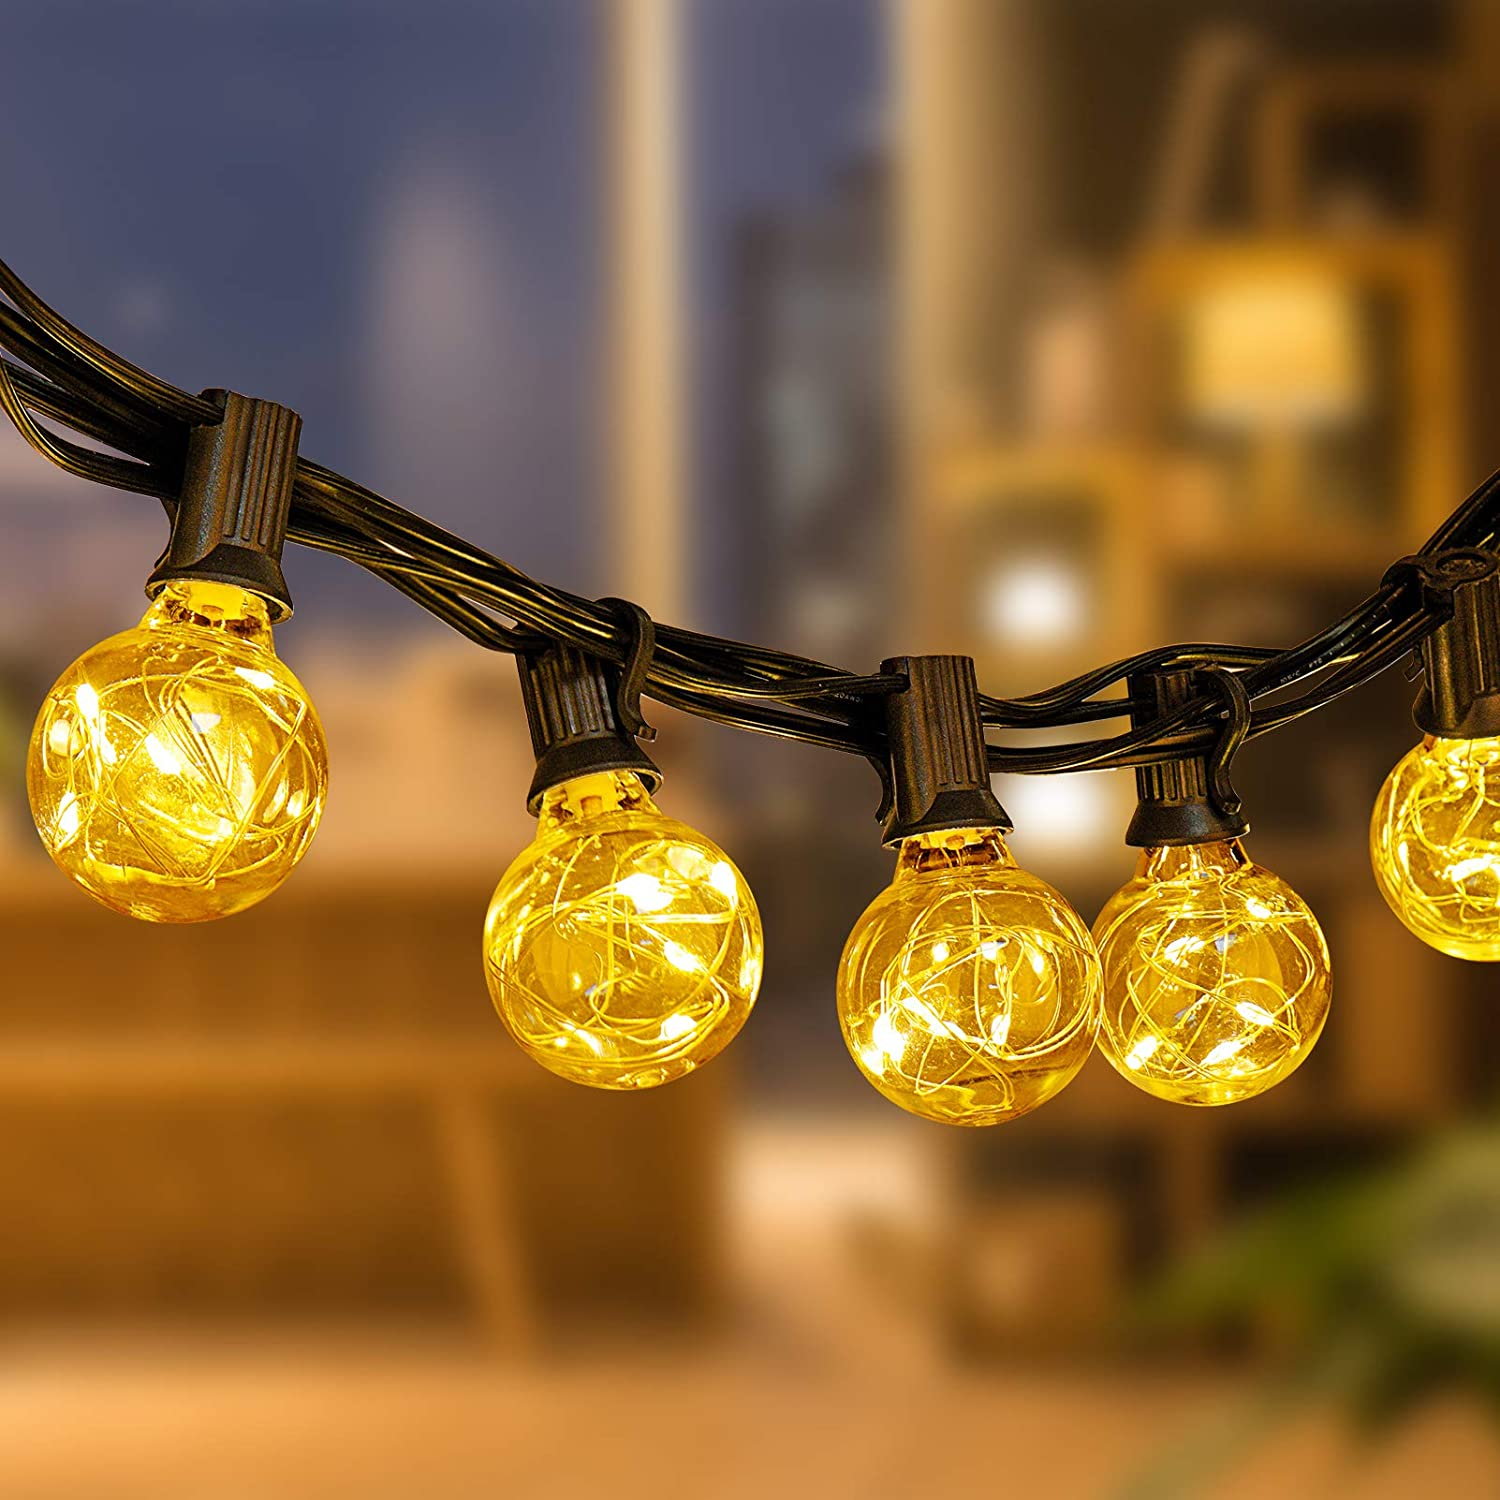 Newpow Max 89% OFF Outdoor String Lights Max 72% OFF LED 36ft Shatte Globe Bulbs 32 with